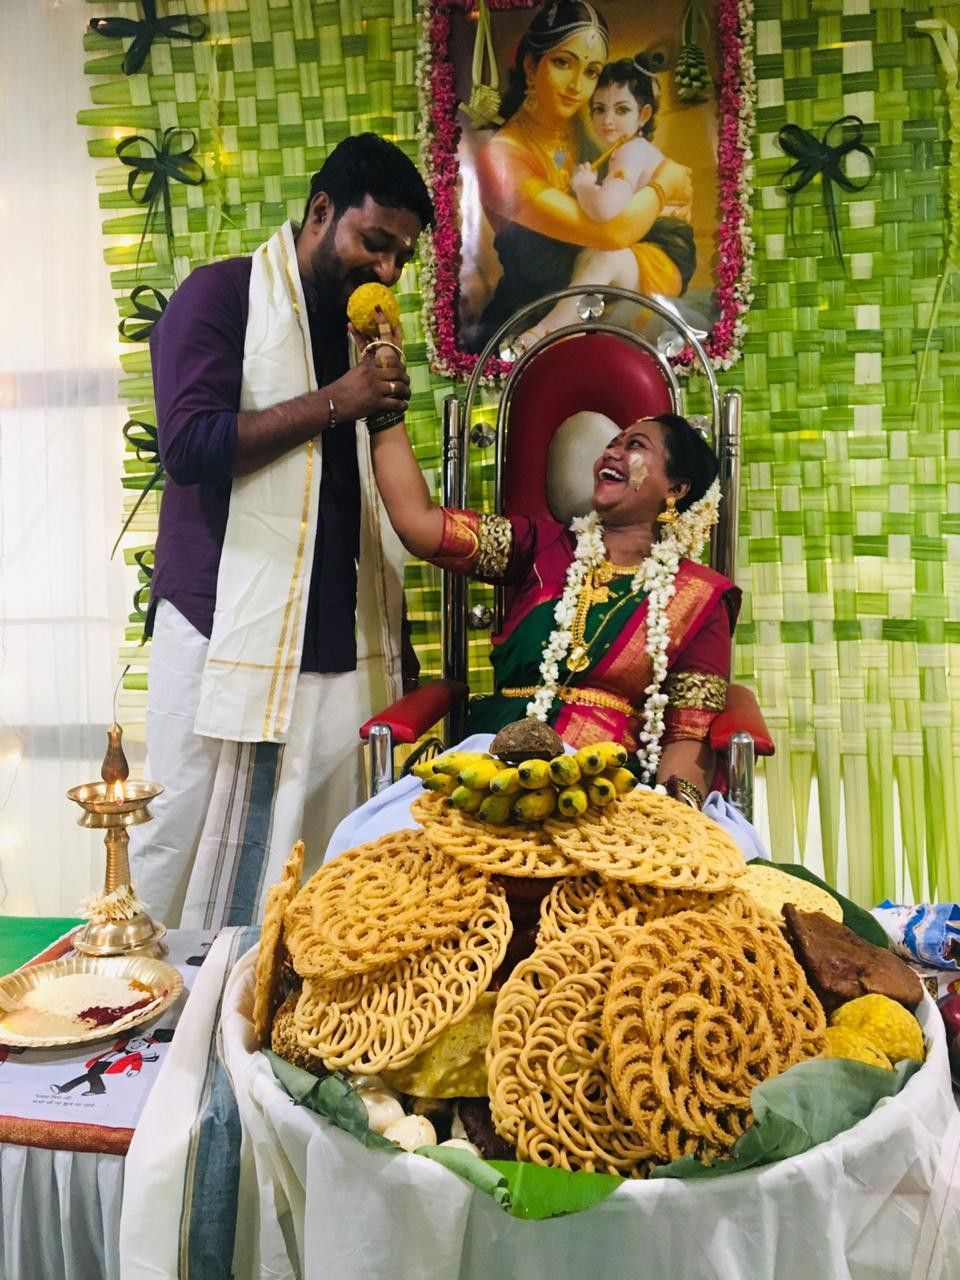 South Indian Baby Shower Decorations : south, indian, shower, decorations, Vidhya, Pillai, Poojari,, South, Indian, Shower,, Mangalorean, Seeman..., Vidh…, Showers,, Shower, Decorations,